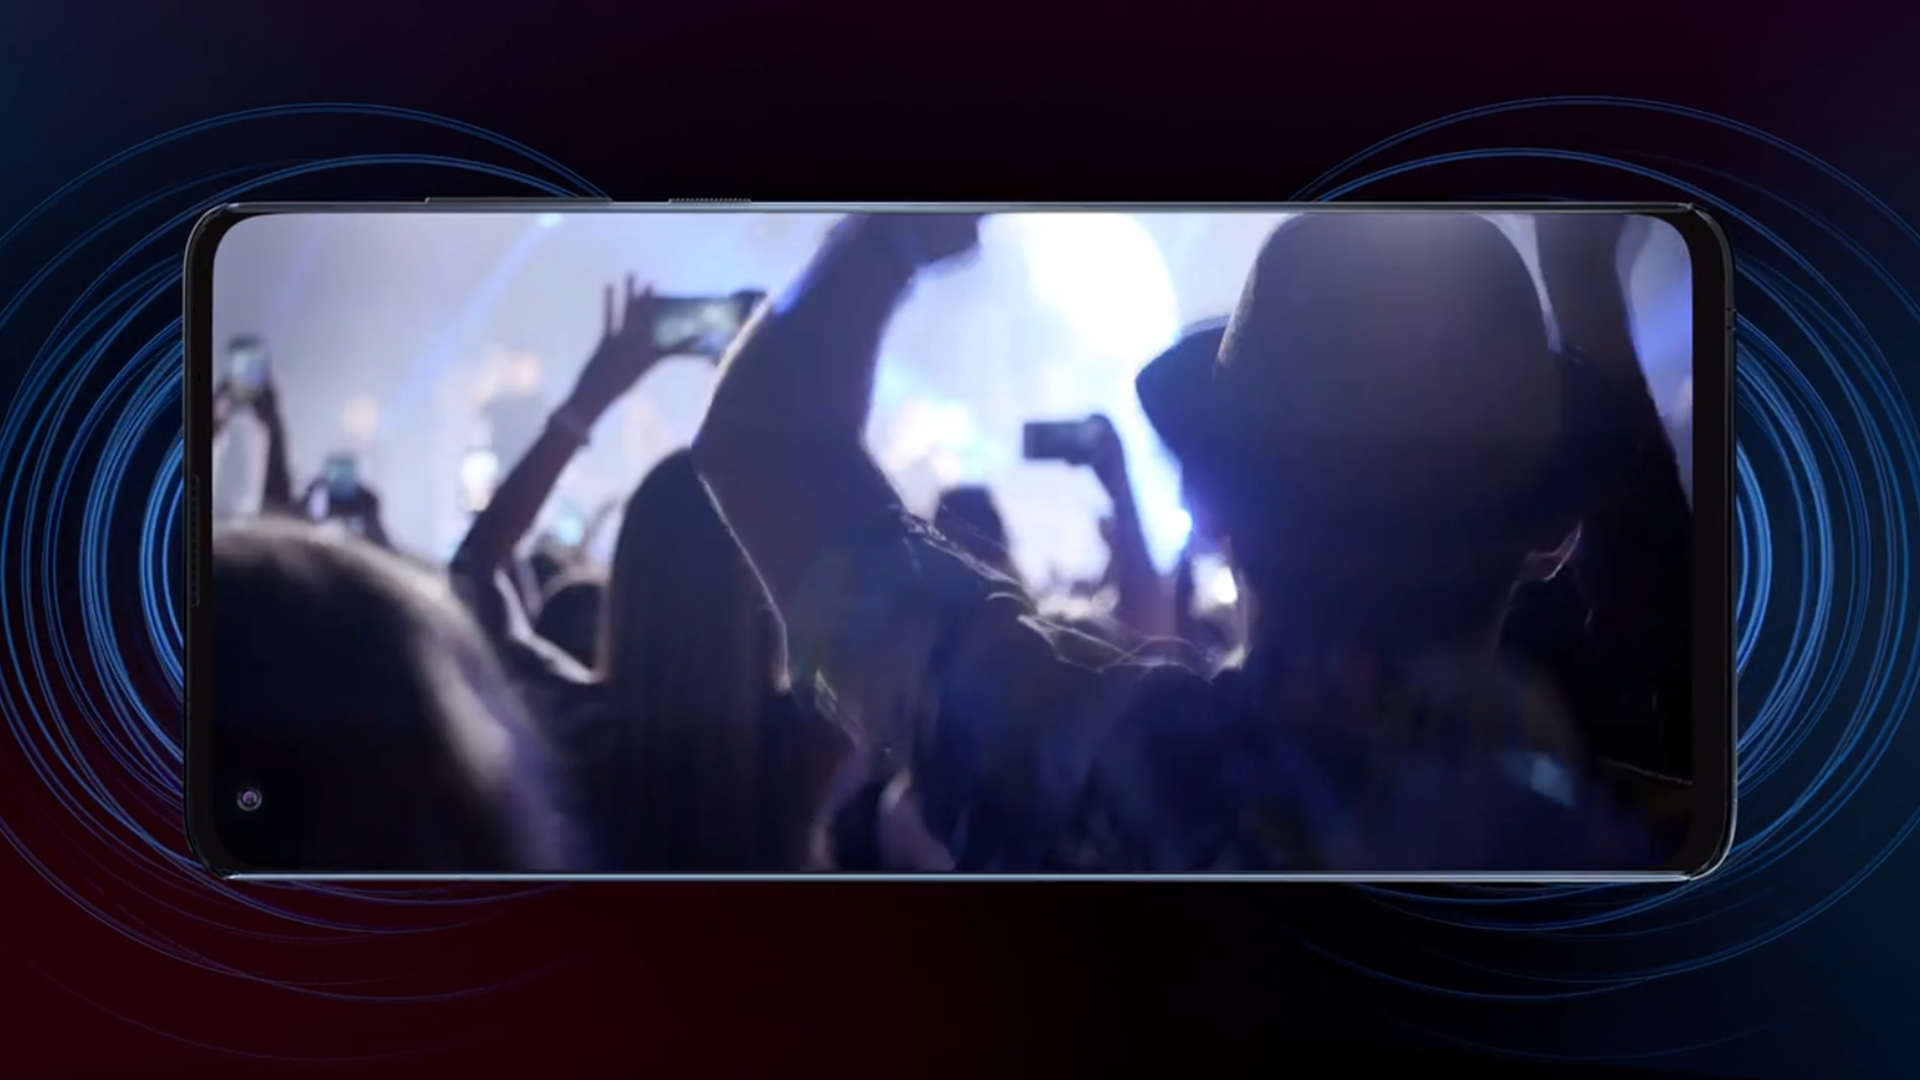 A live concert audience being filmed on the Motorola Edge.